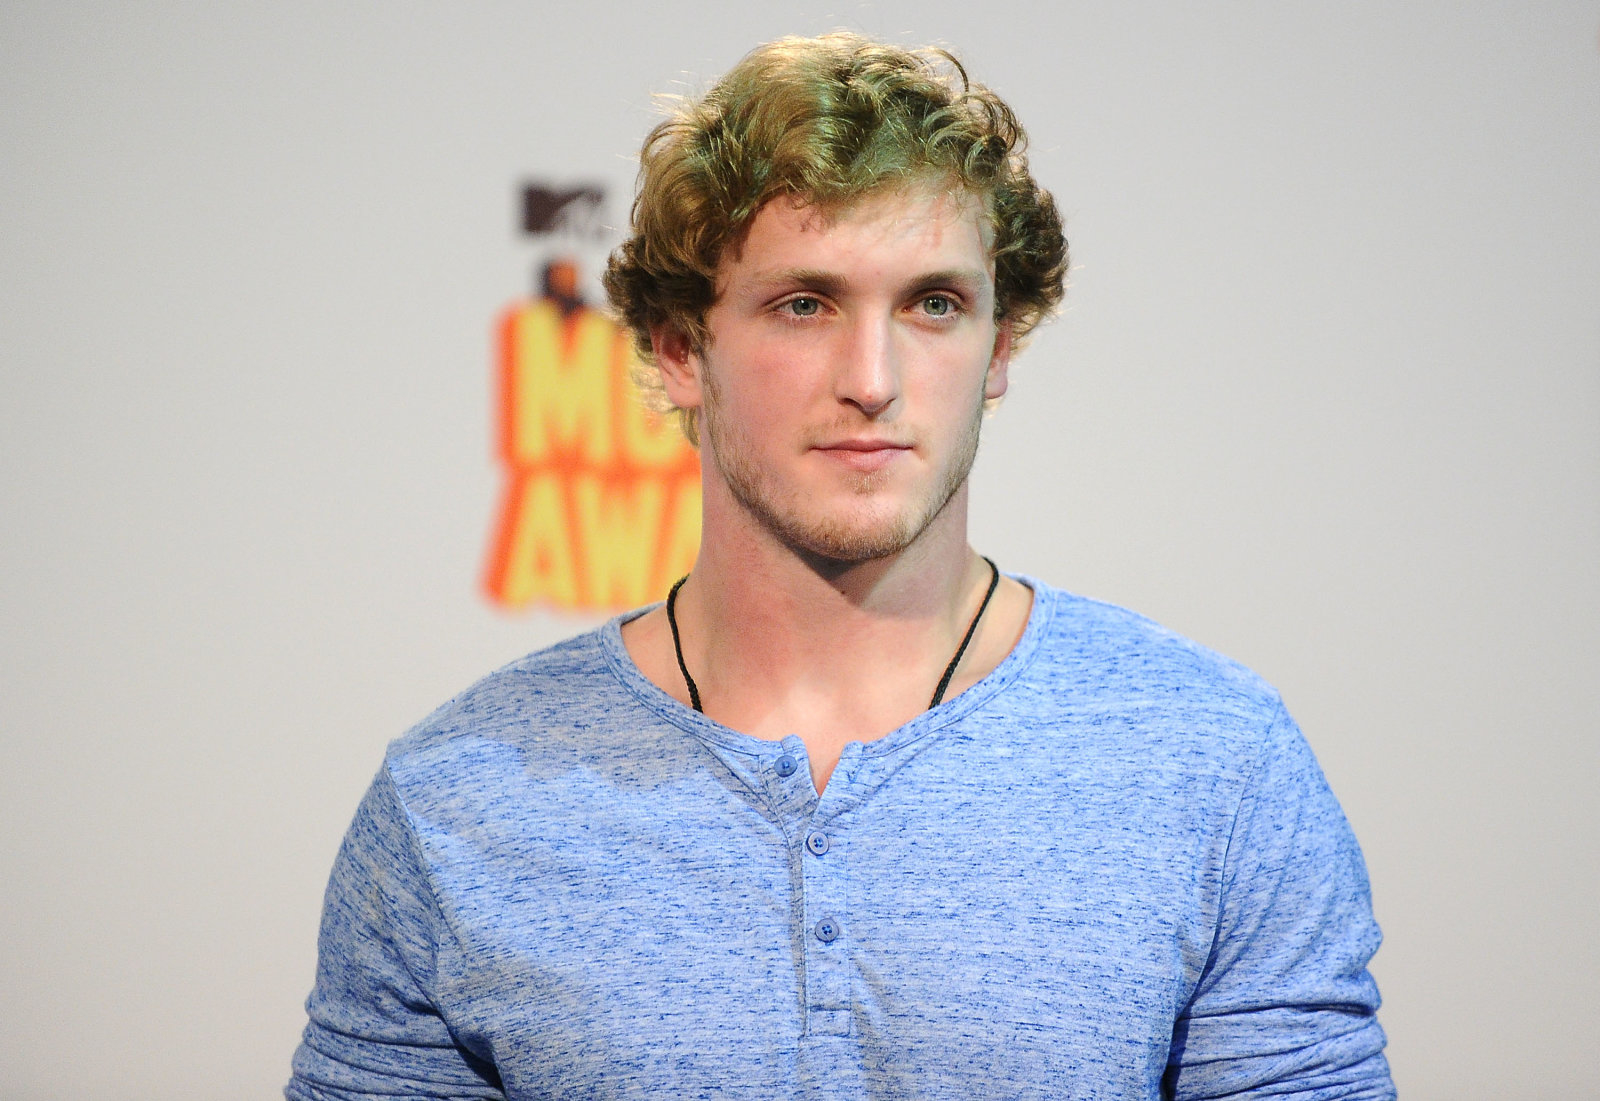 LOS ANGELES, CA - APRIL 12:  Logan Paul poses in the press room at the 2015 MTV Movie Awards at Nokia Theatre L.A. Live on April 12, 2015 in Los Angeles, California.  (Photo by Jason LaVeris/FilmMagic)